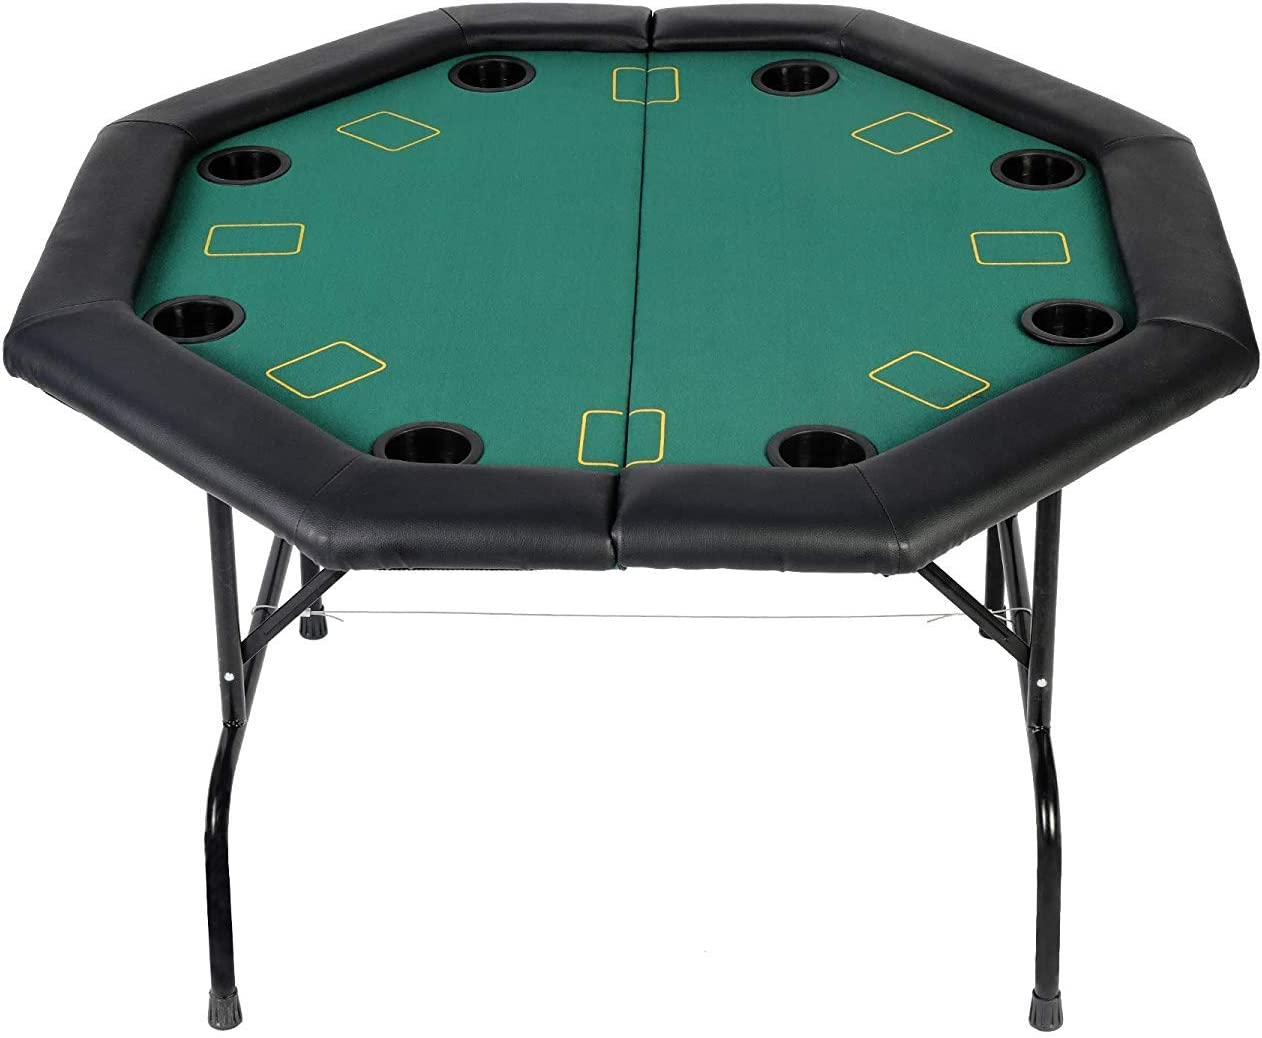 Livebest 48 Octagon Folding Poker Table With Leg 8 10 Player Poker Chips Set Cup Holders Inserts For Luxury Texas Card Game Blackjack Green Speed Felt Cloth 4 Fold 8 Player